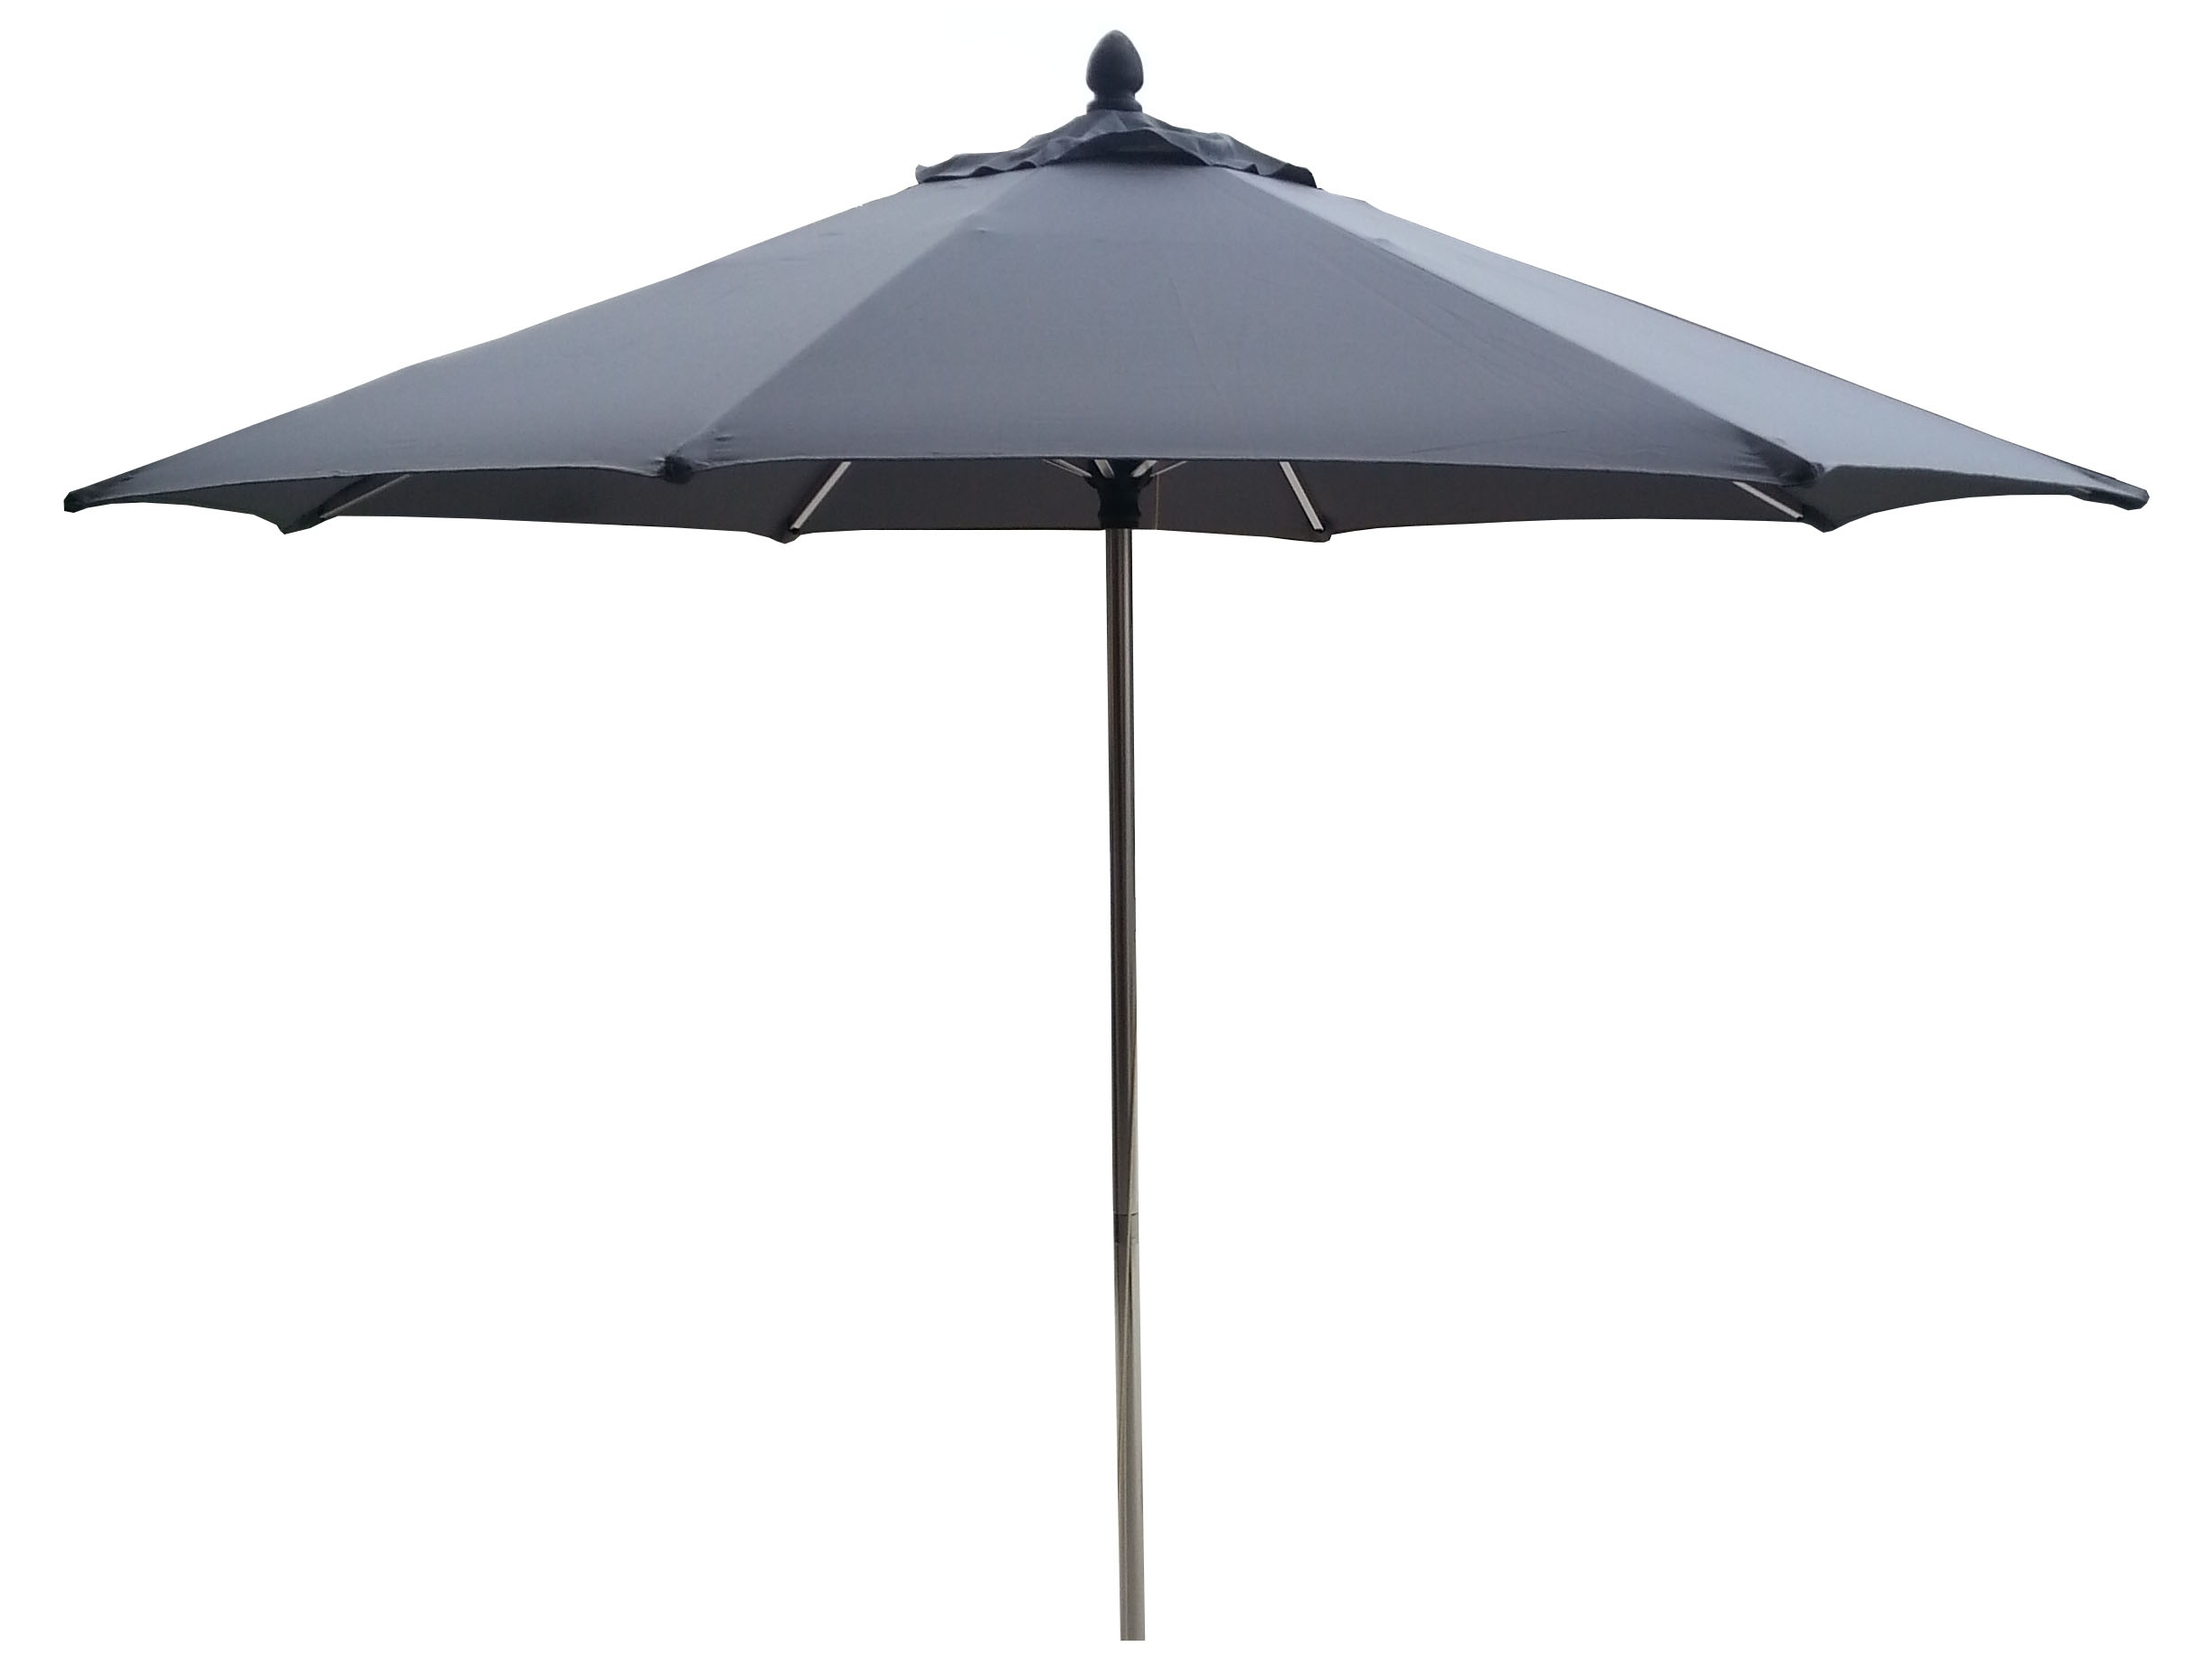 Market Umbrella Archives – Rainbrella With Regard To Latest Grey Patio Umbrellas (View 2 of 20)